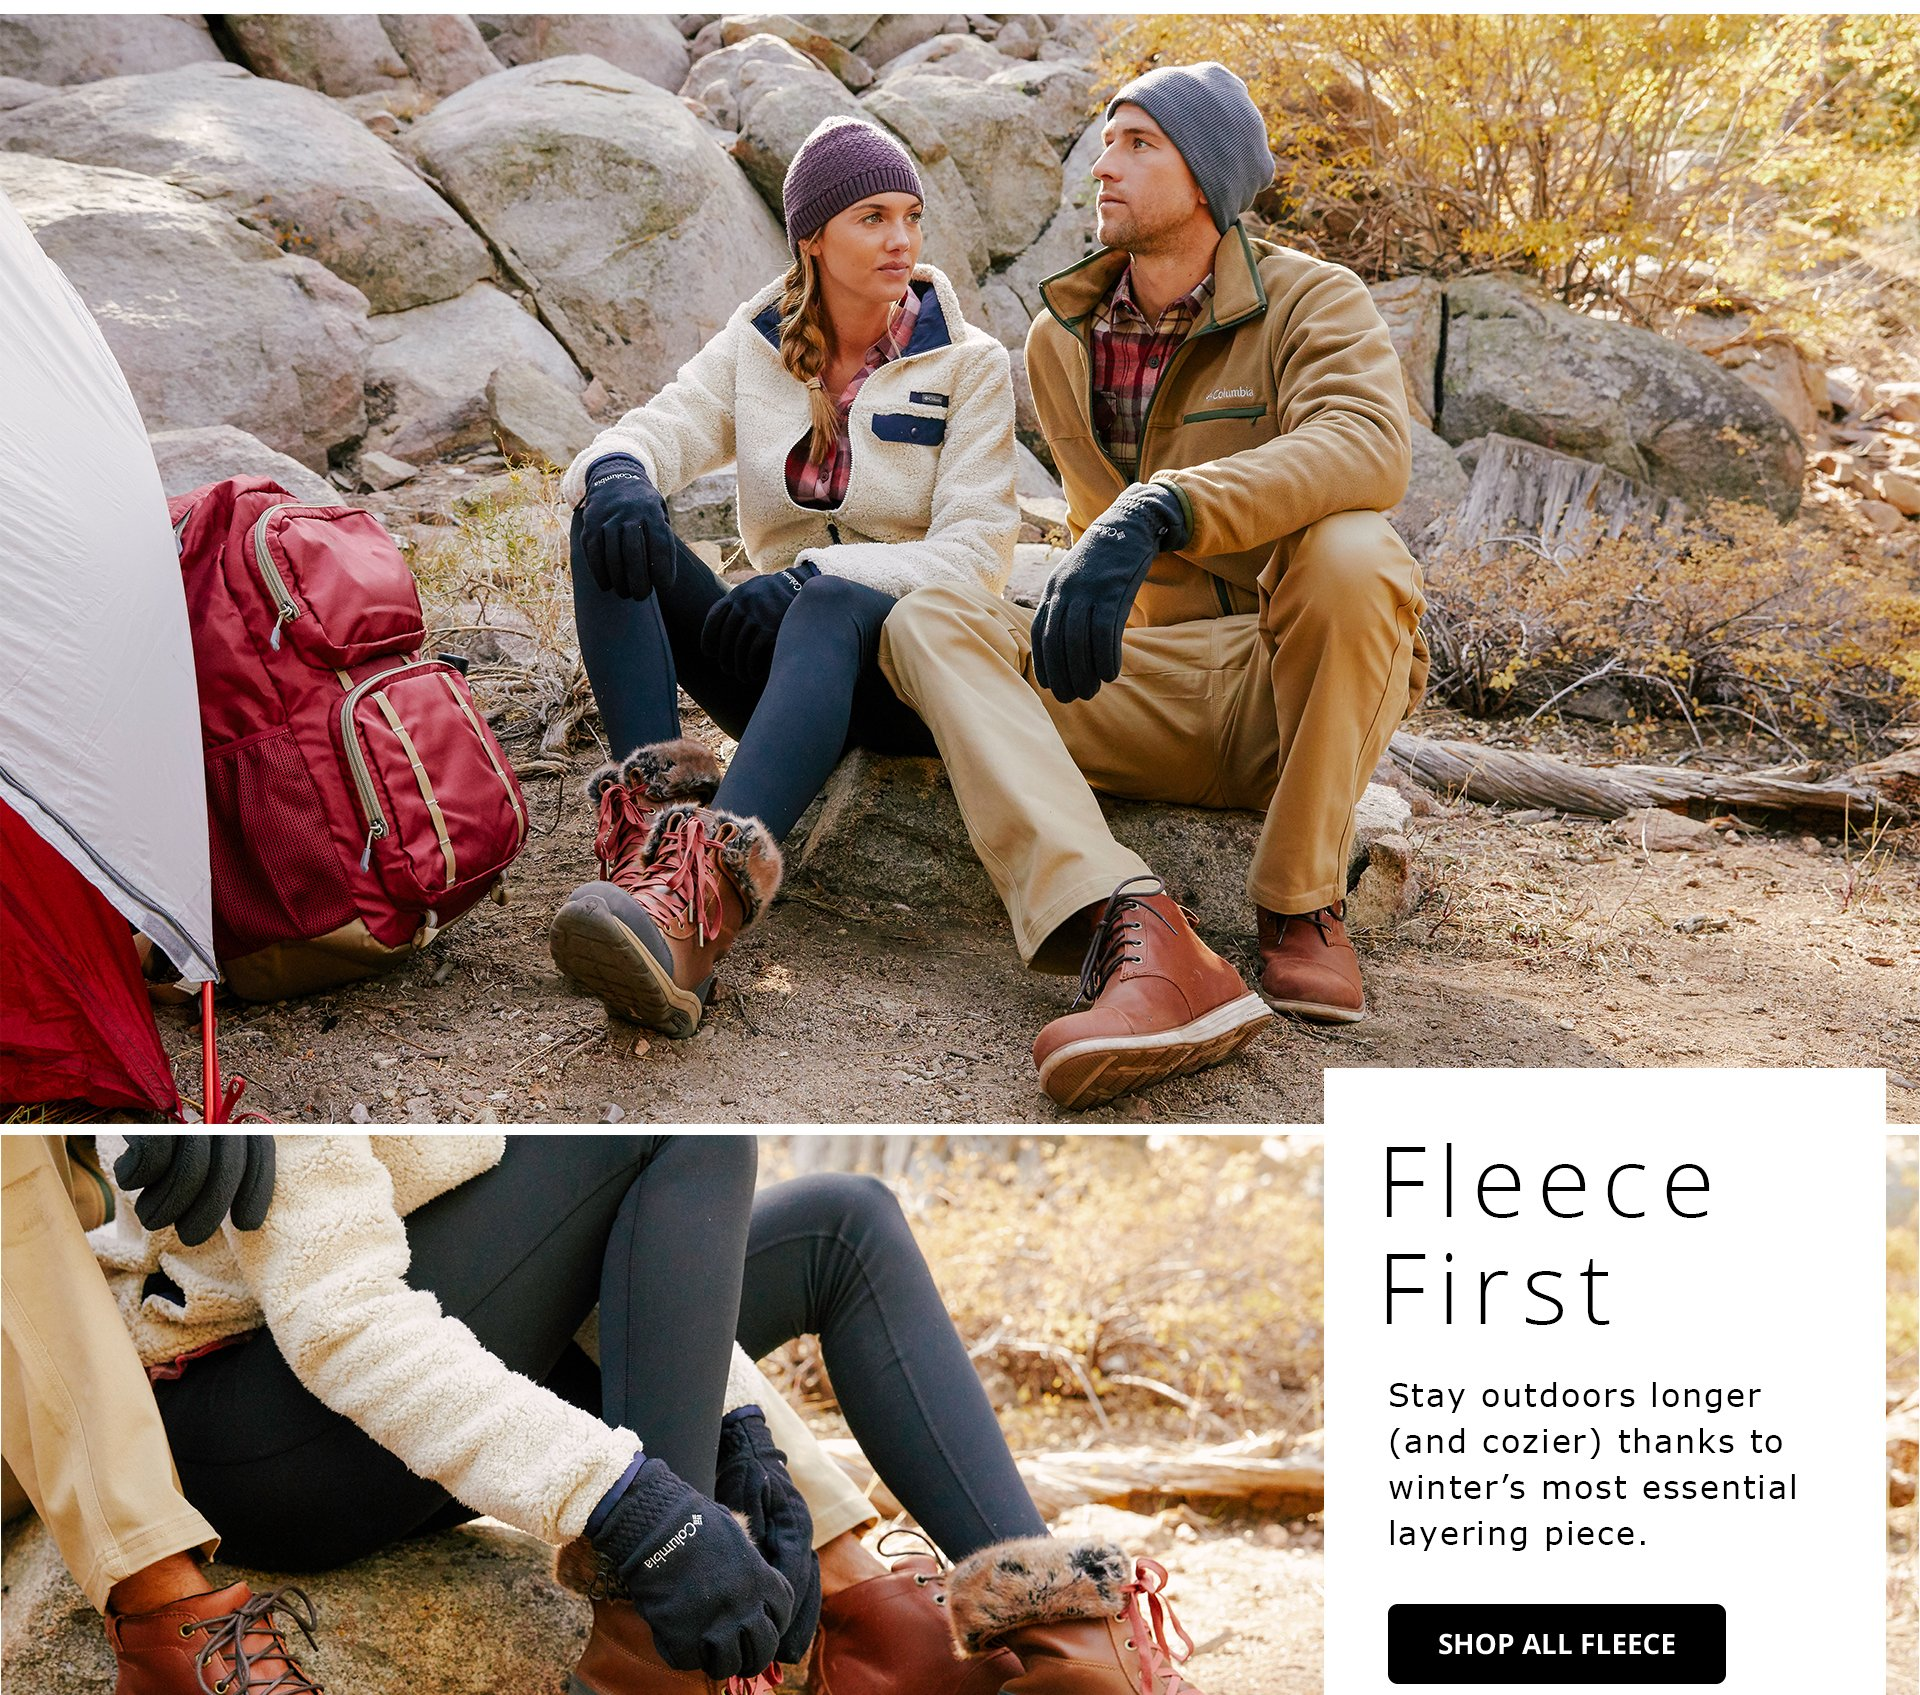 Fleece First. Stay cooler longer (and cozier) thanks to winter's most essential layering piece. Shop All Fleece.